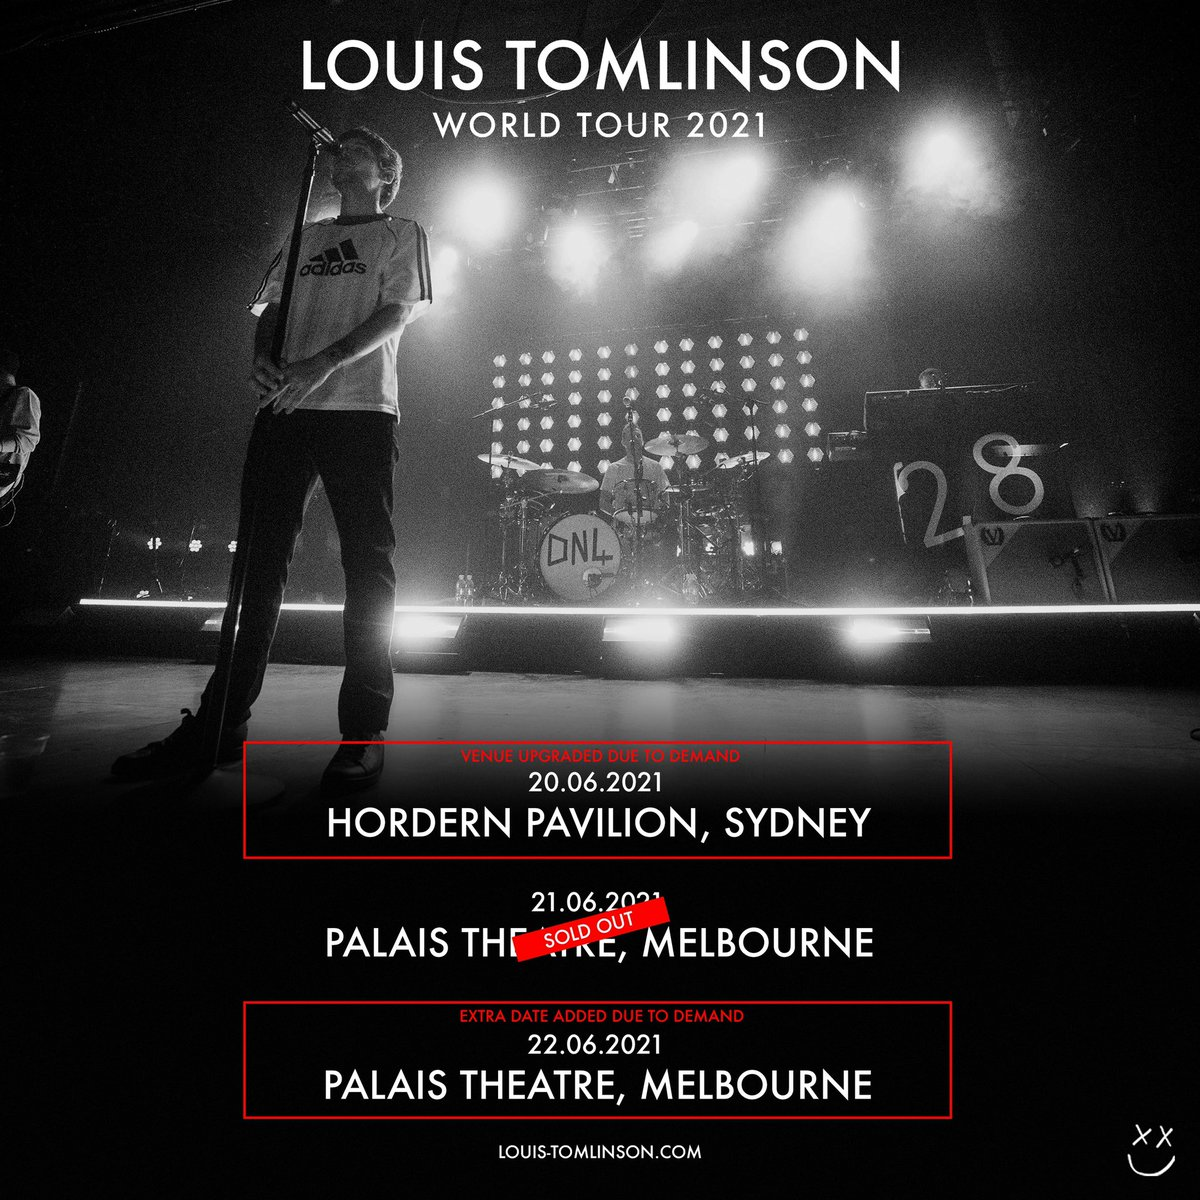 AUSTRALIA! Louis has upgraded his Sydney show and added a second show in Melbourne for the World Tour in 2021. Tickets are on sale on Thursday 22nd October at 12pm AEDT.  Who will we be seeing there?!